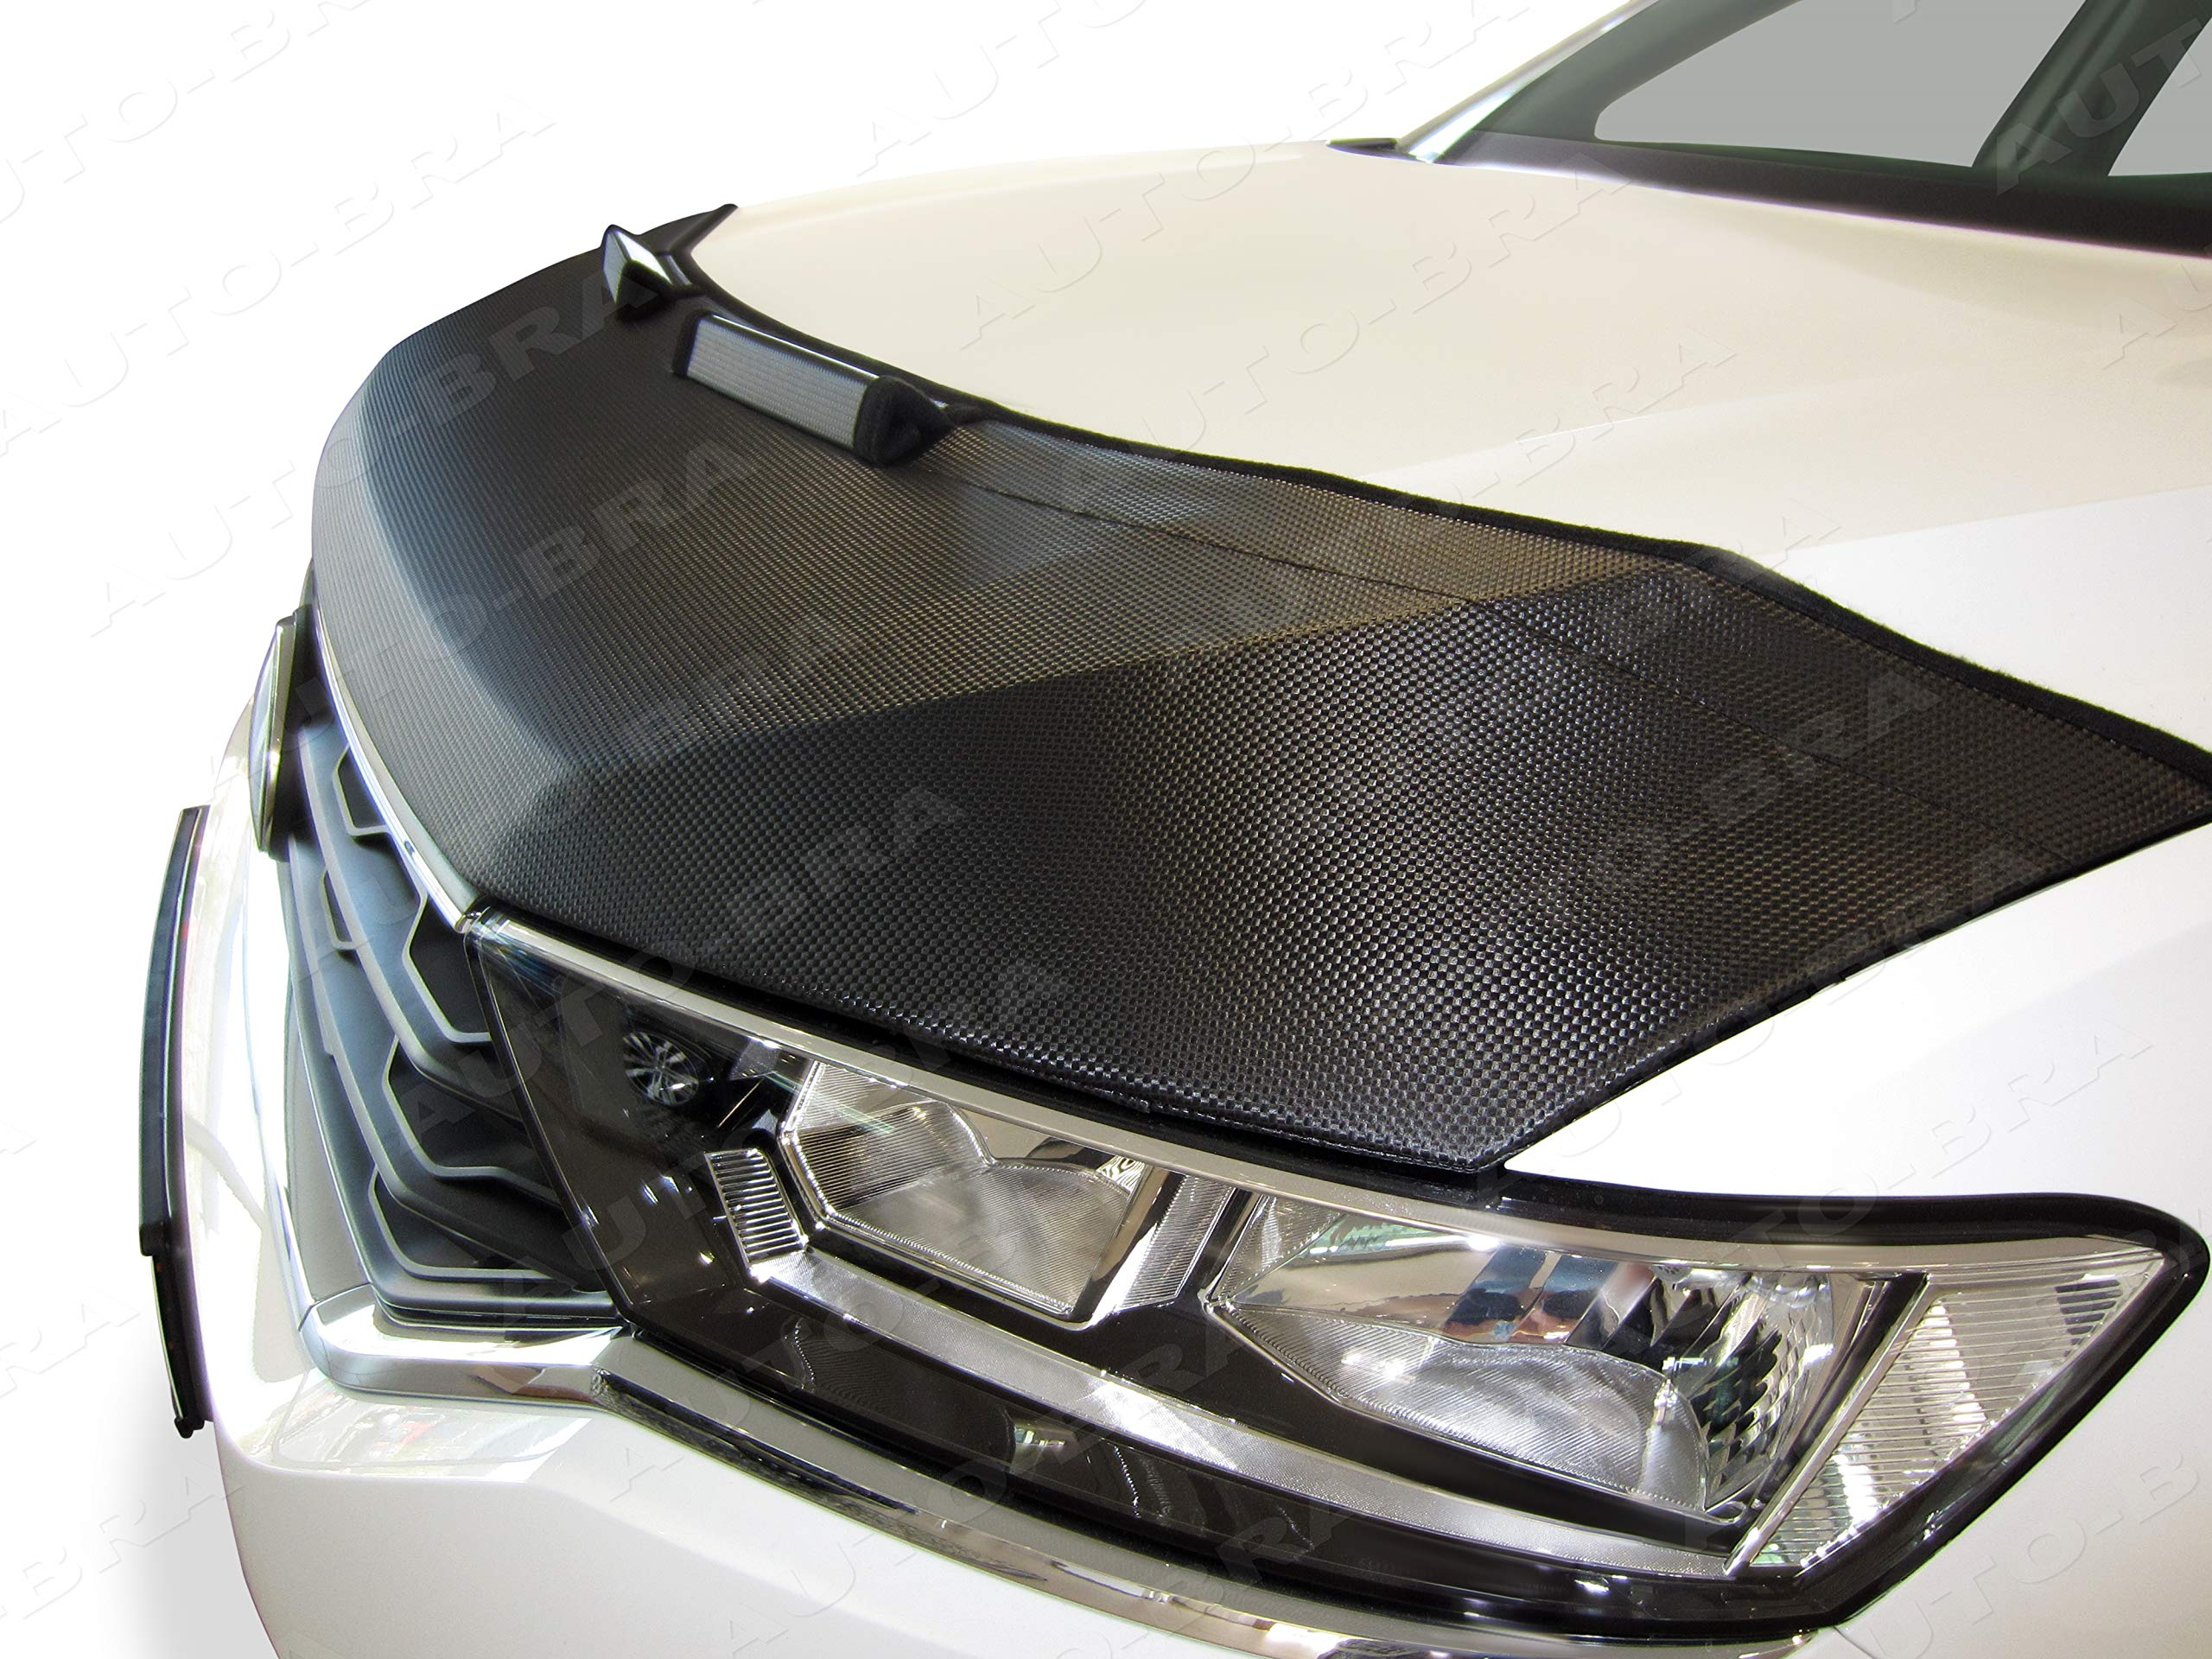 HOOD BRA Front End Nose Mask for Ford Mustang 2010-2013 Bonnet Bra STONEGUARD PROTECTOR TUNING